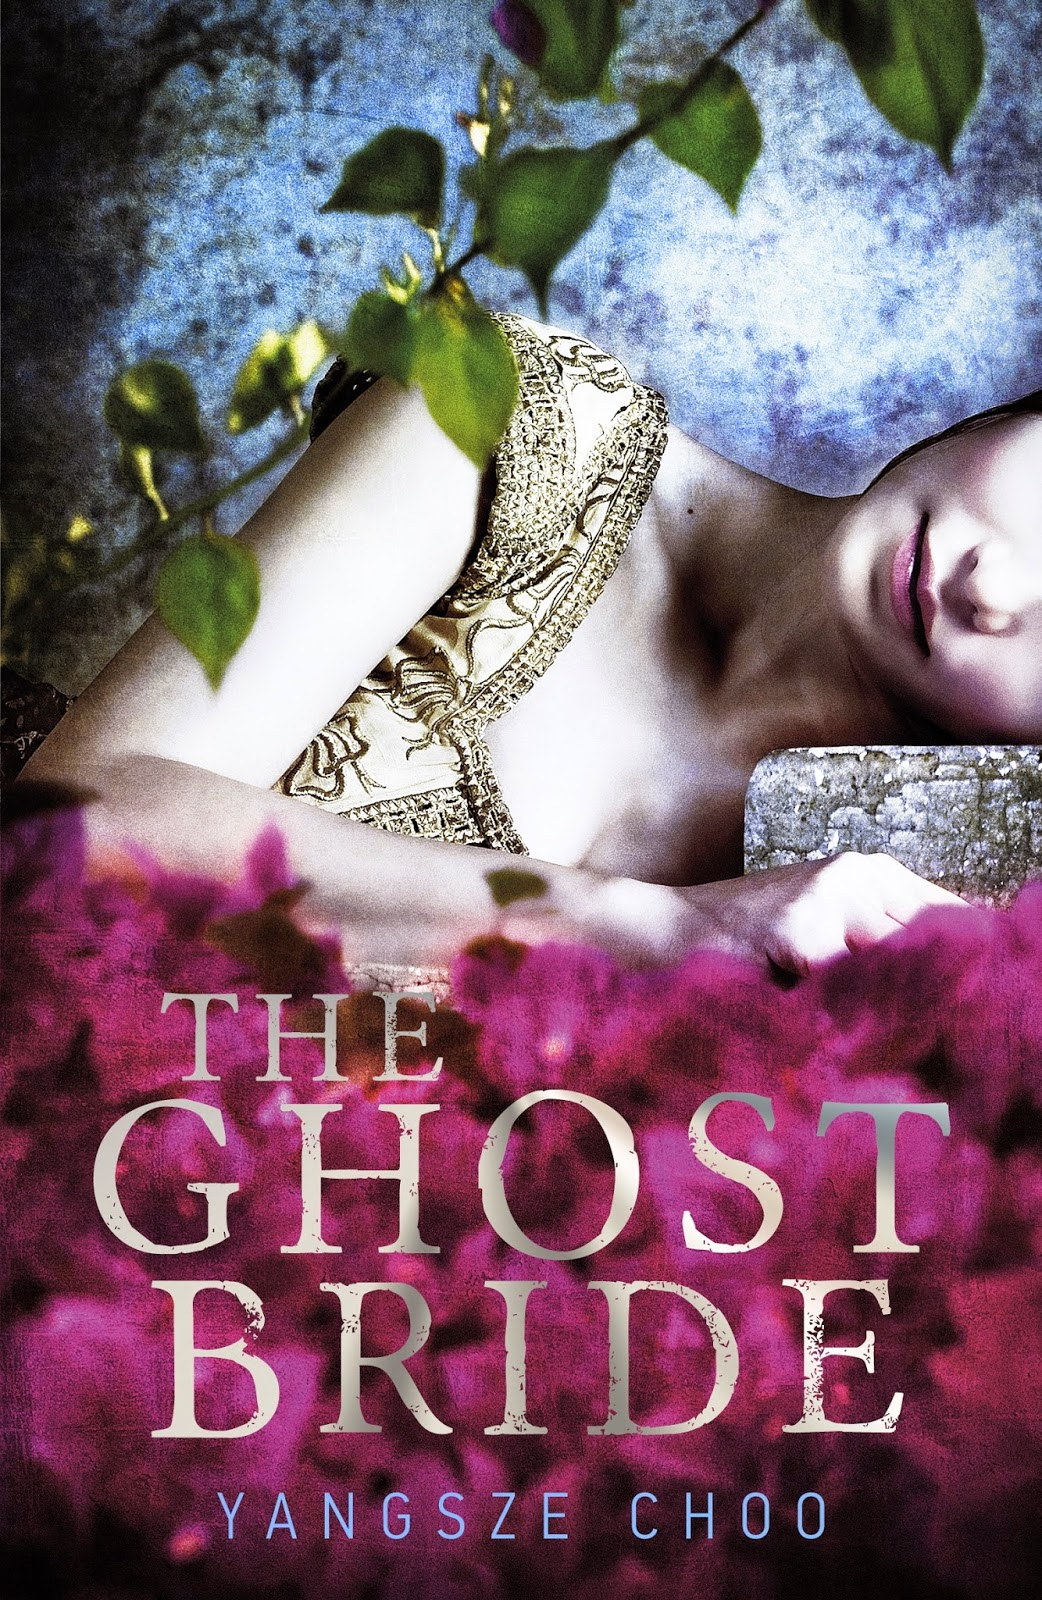 http://www.amazon.com/The-Ghost-Bride-A-Novel/dp/0062227327